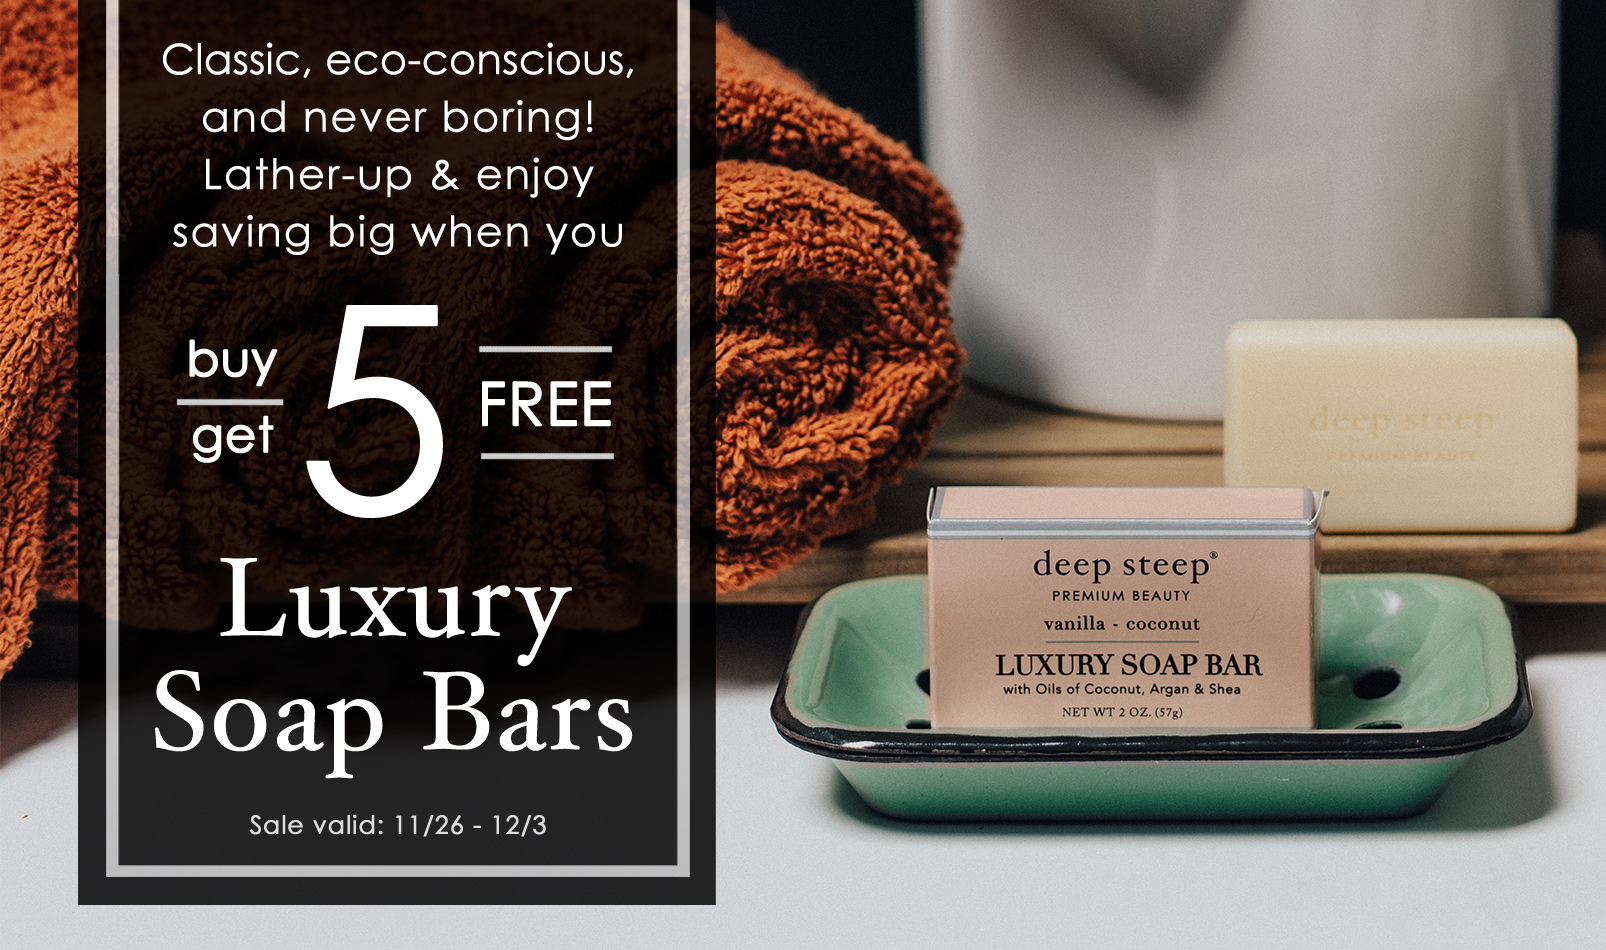 Luxury Soap Bars